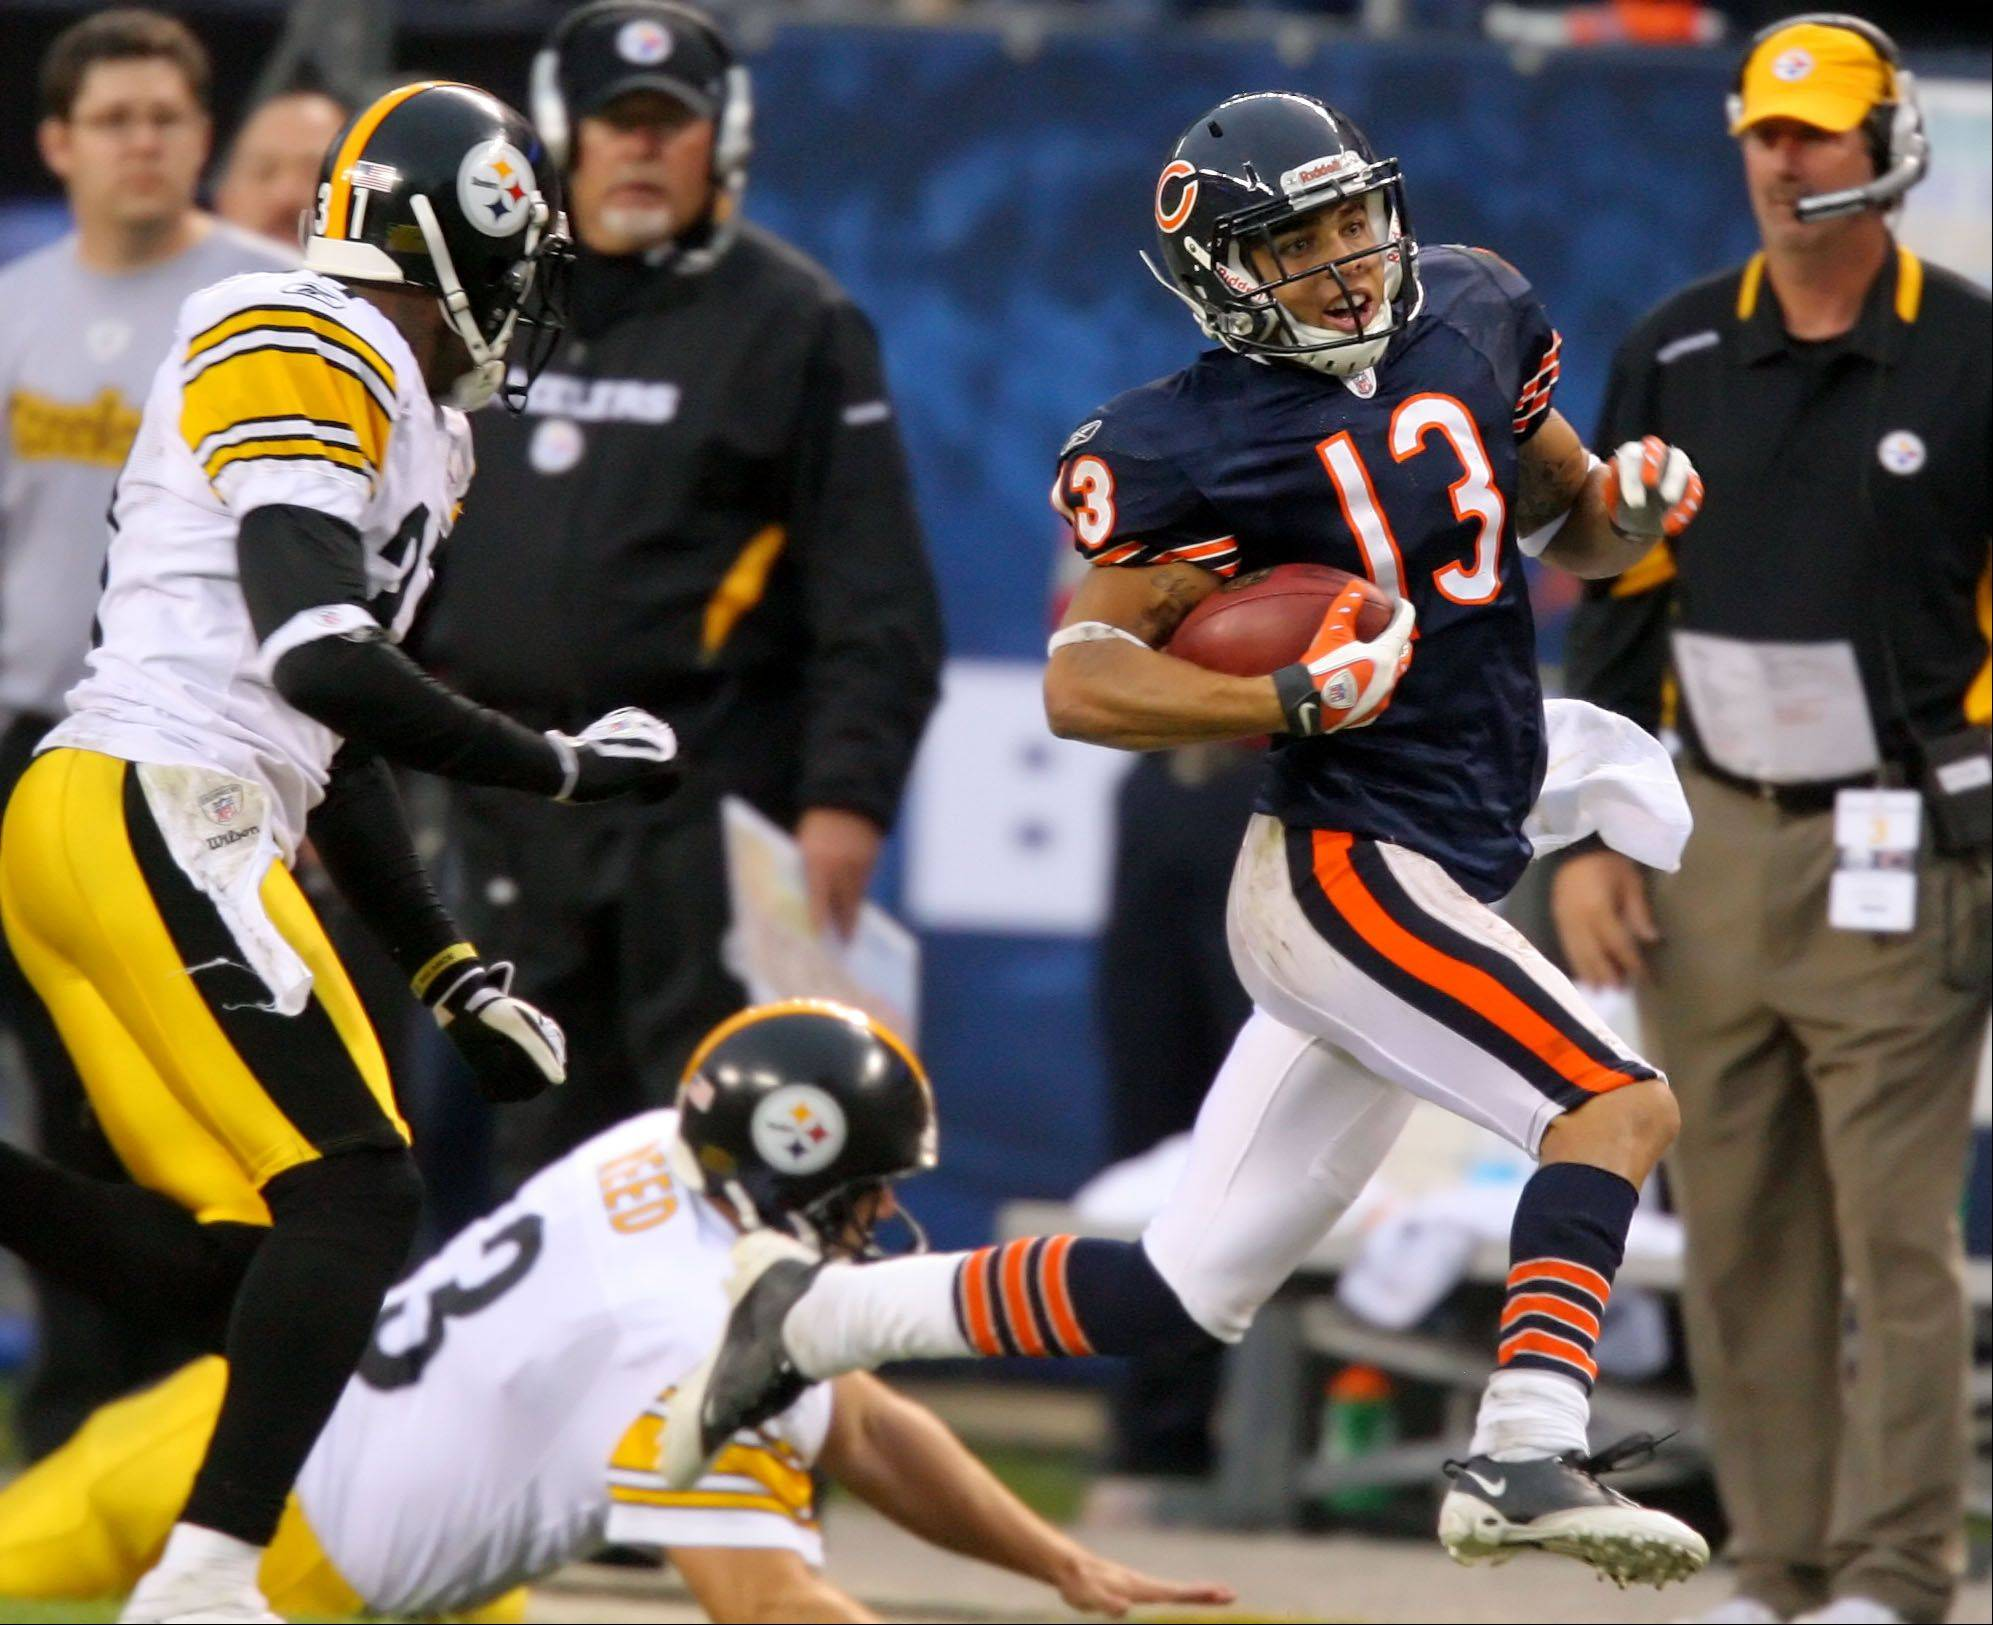 Bears wide receiver Johnny Knox breaks away on a kick return during a win 17-14 over the Steelers.